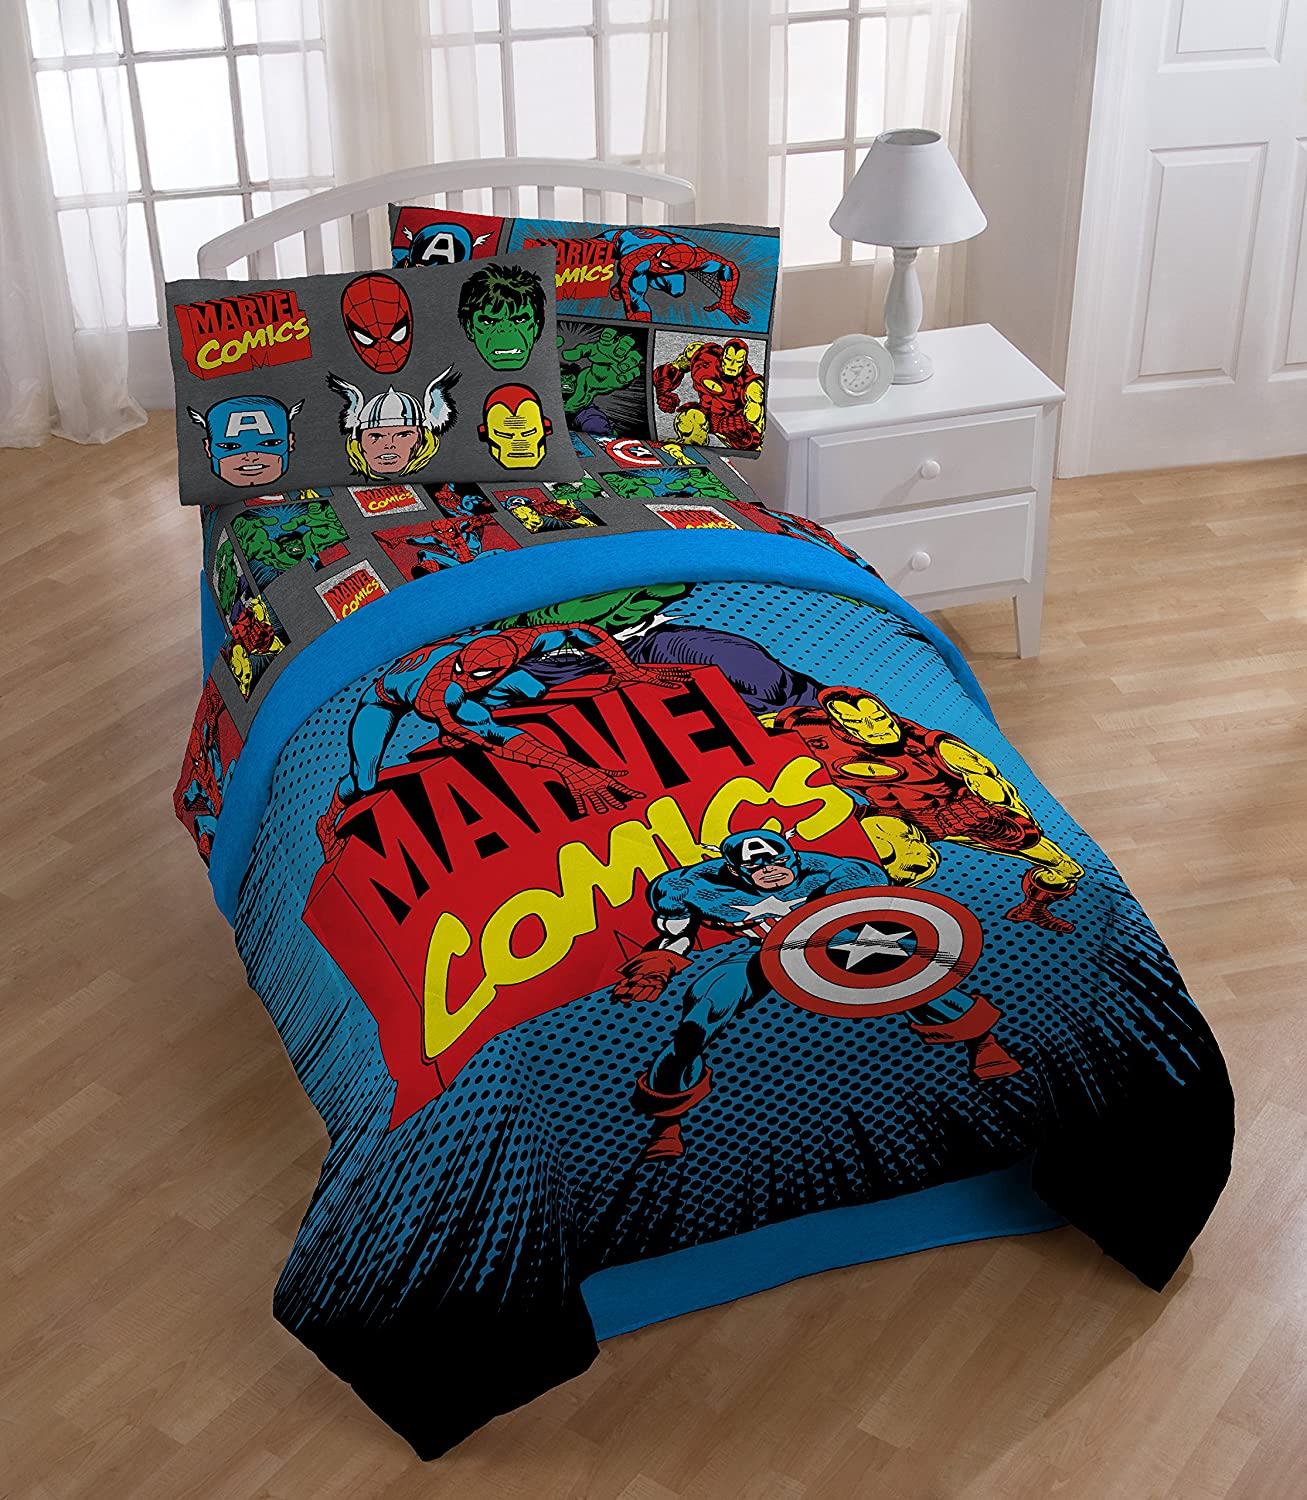 Avengers bedding - Amazon Com Marvel Superheroes Microfiber 3 Piece Twin Sheet Set Home Kitchen